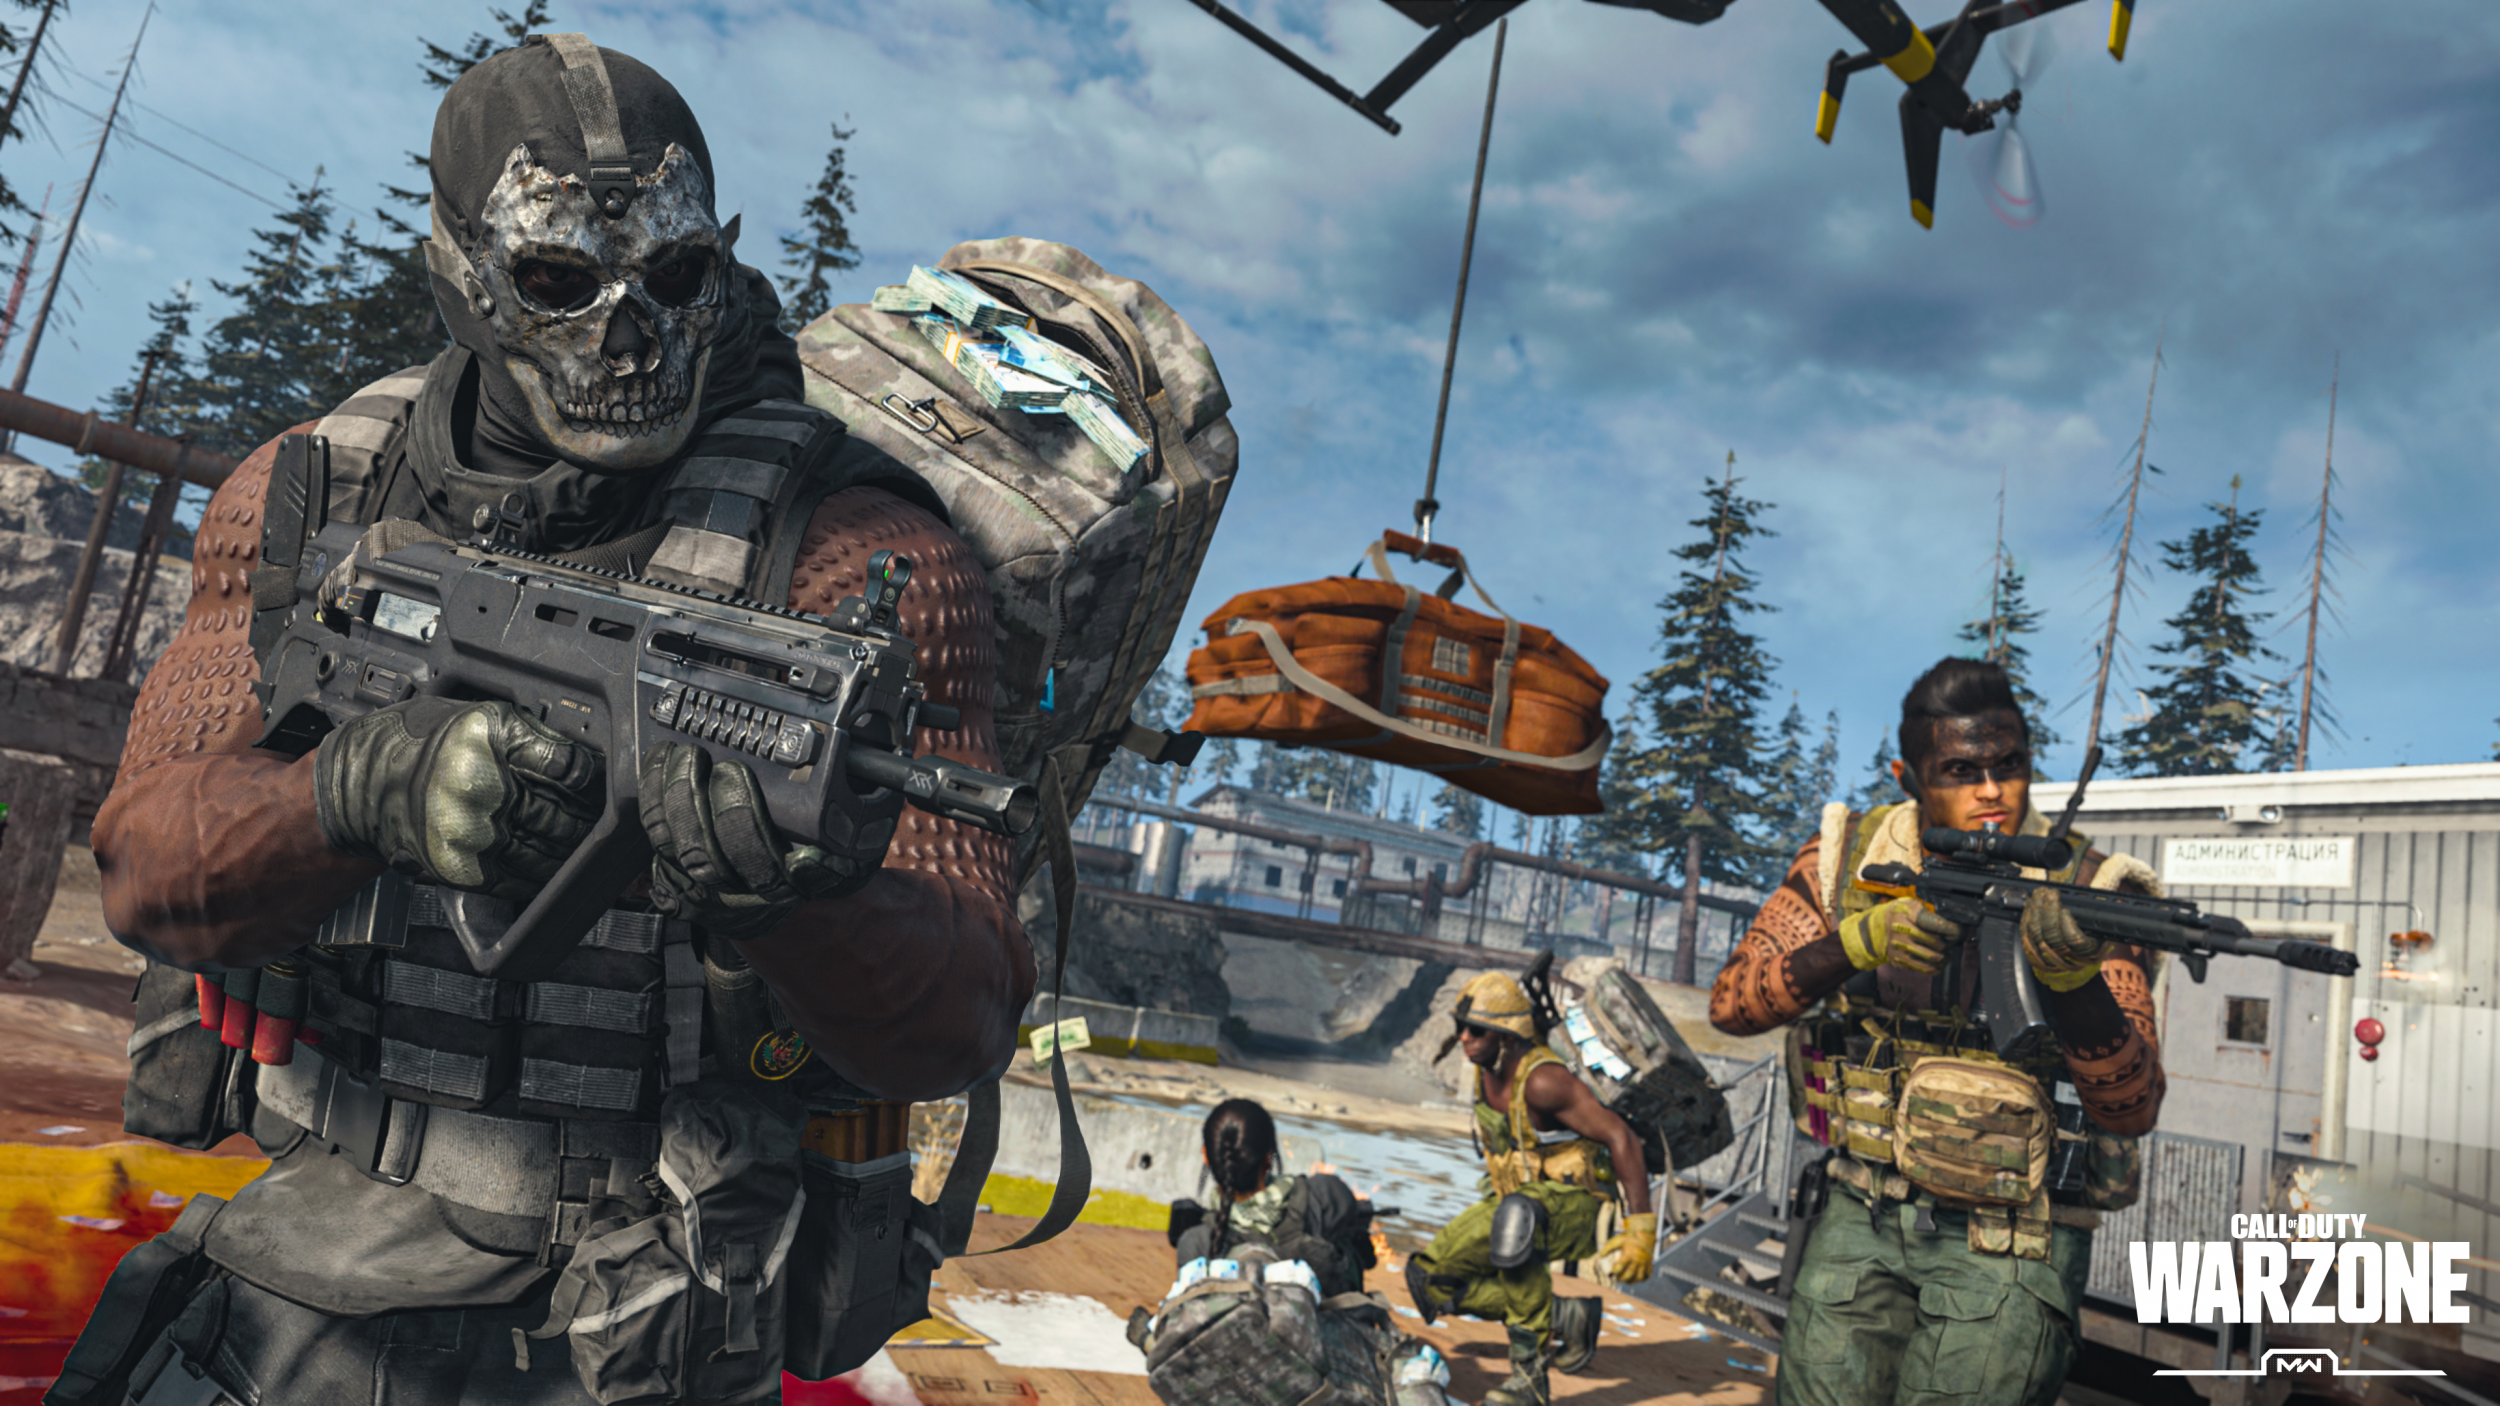 Call Of Duty Warzone How To Download For Free On Ps4 Xbox Pc